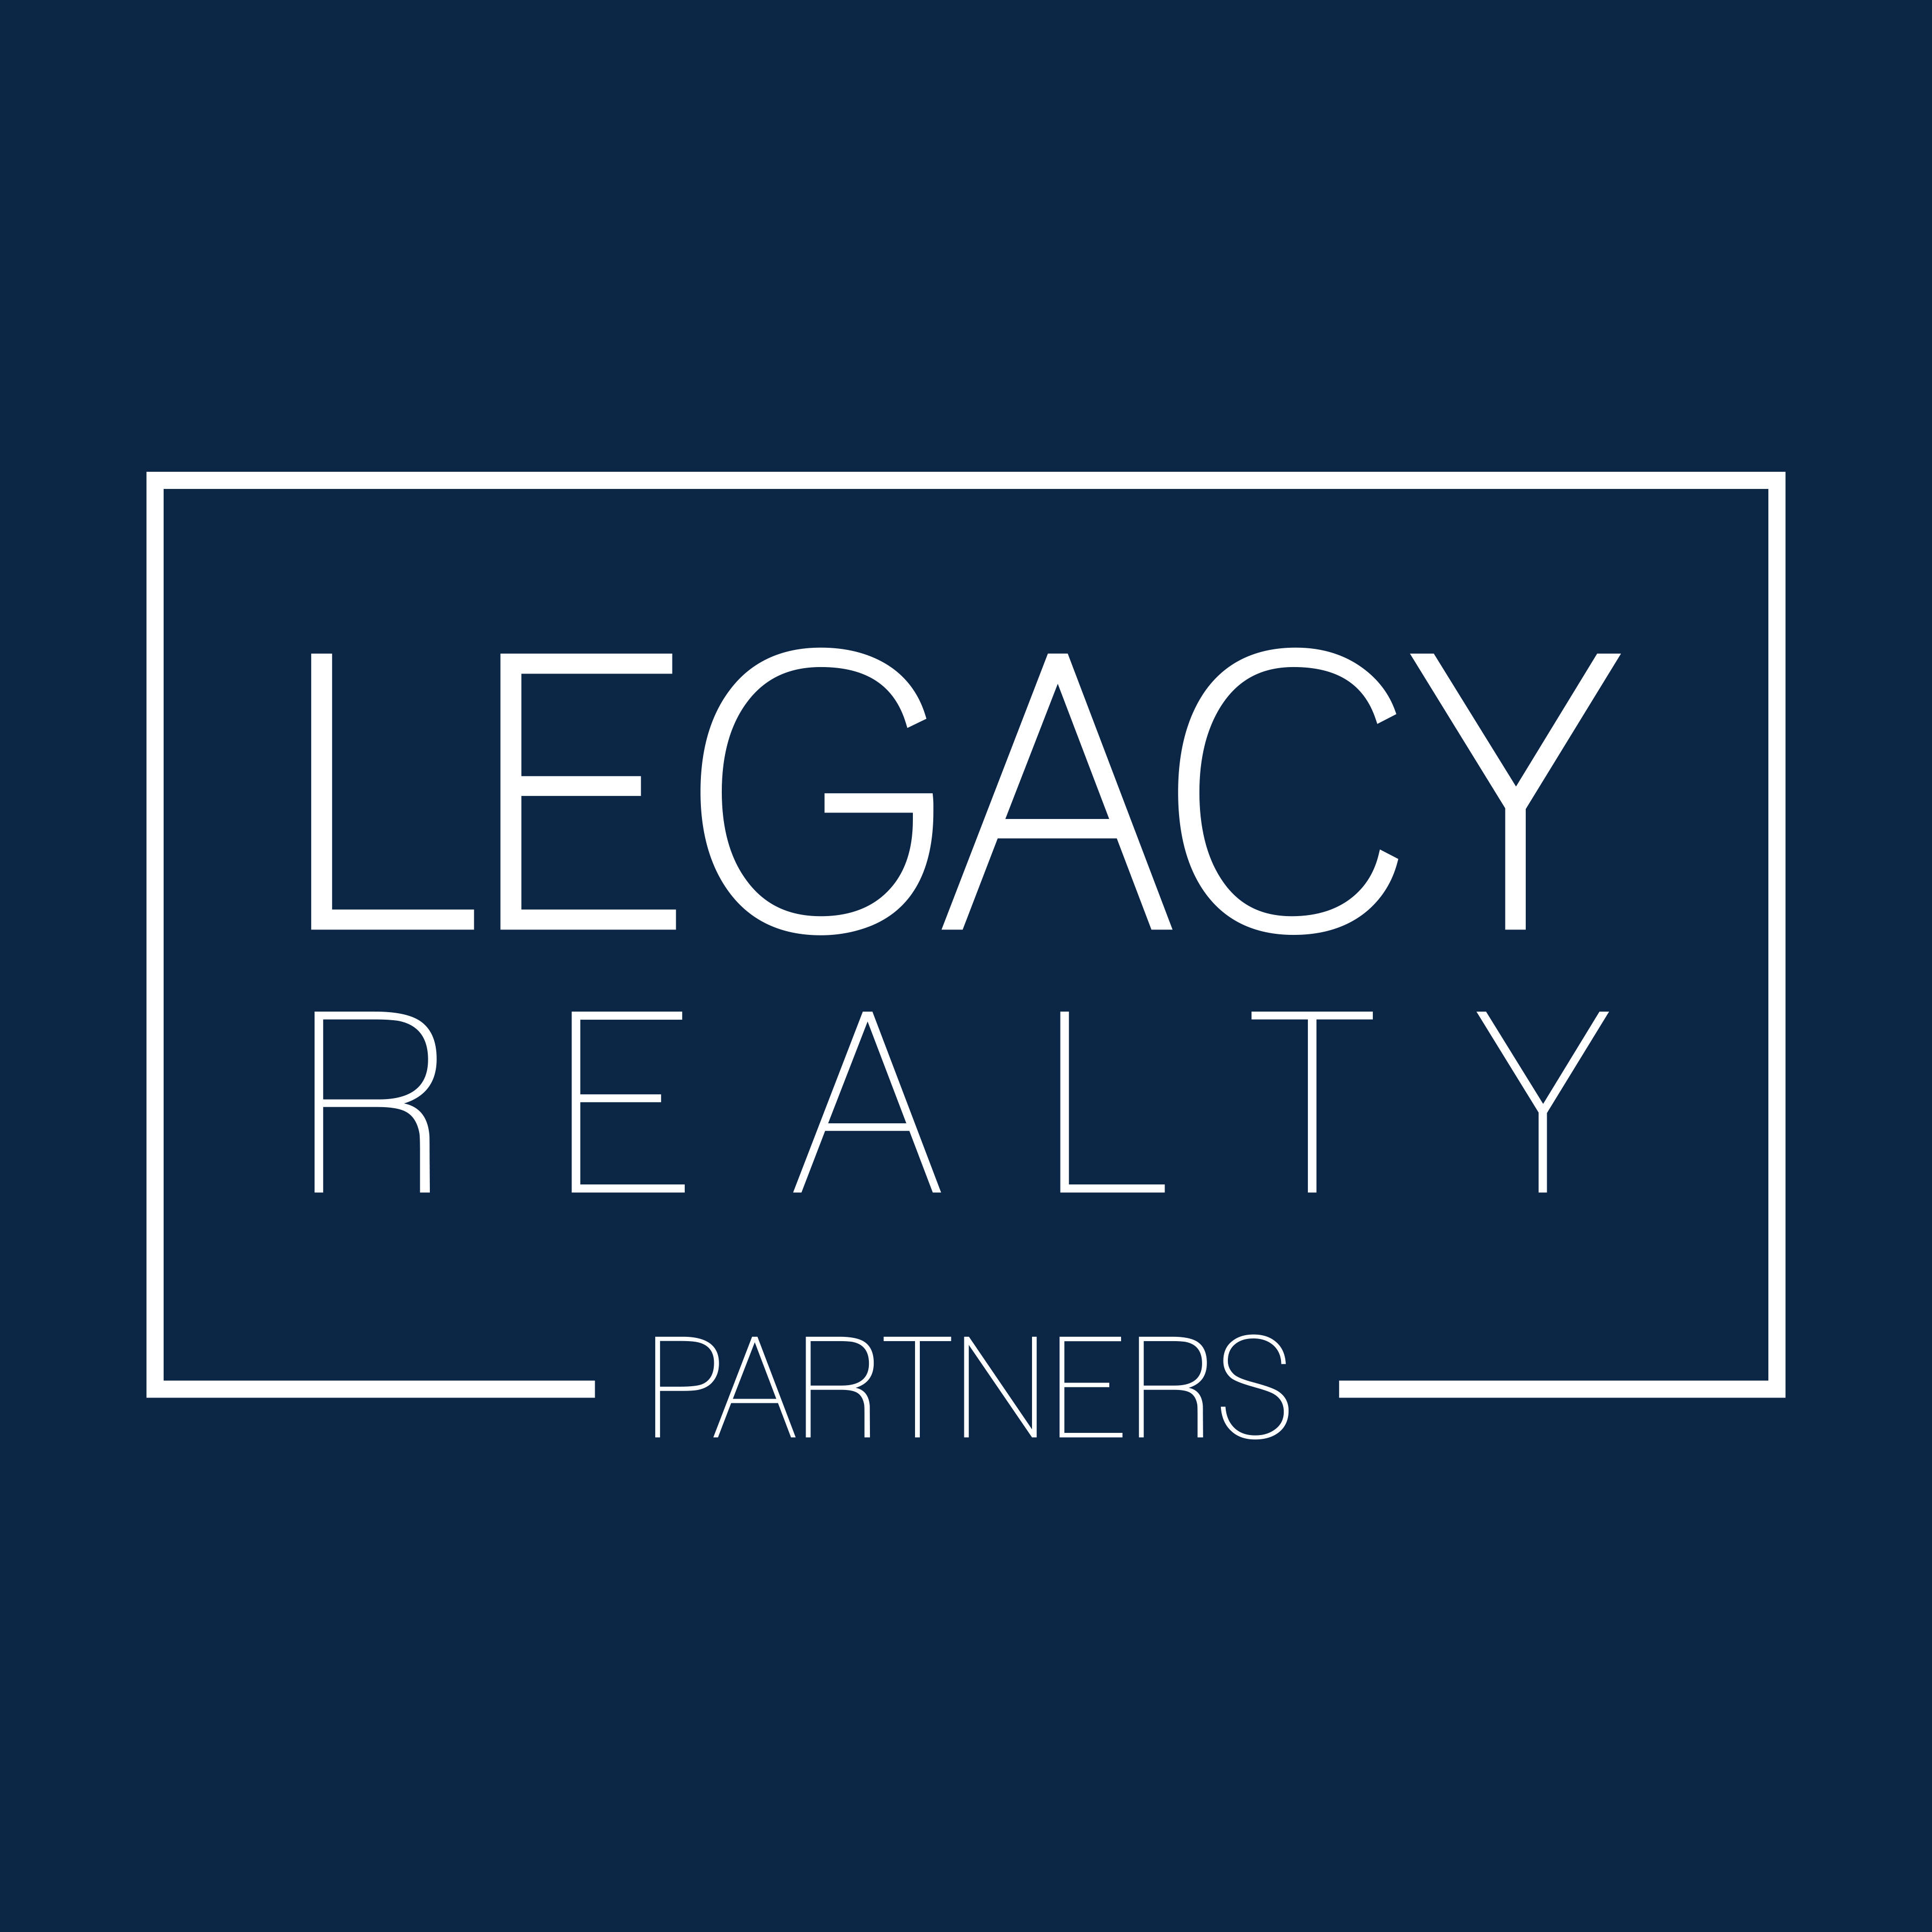 Legacy Realty Partners